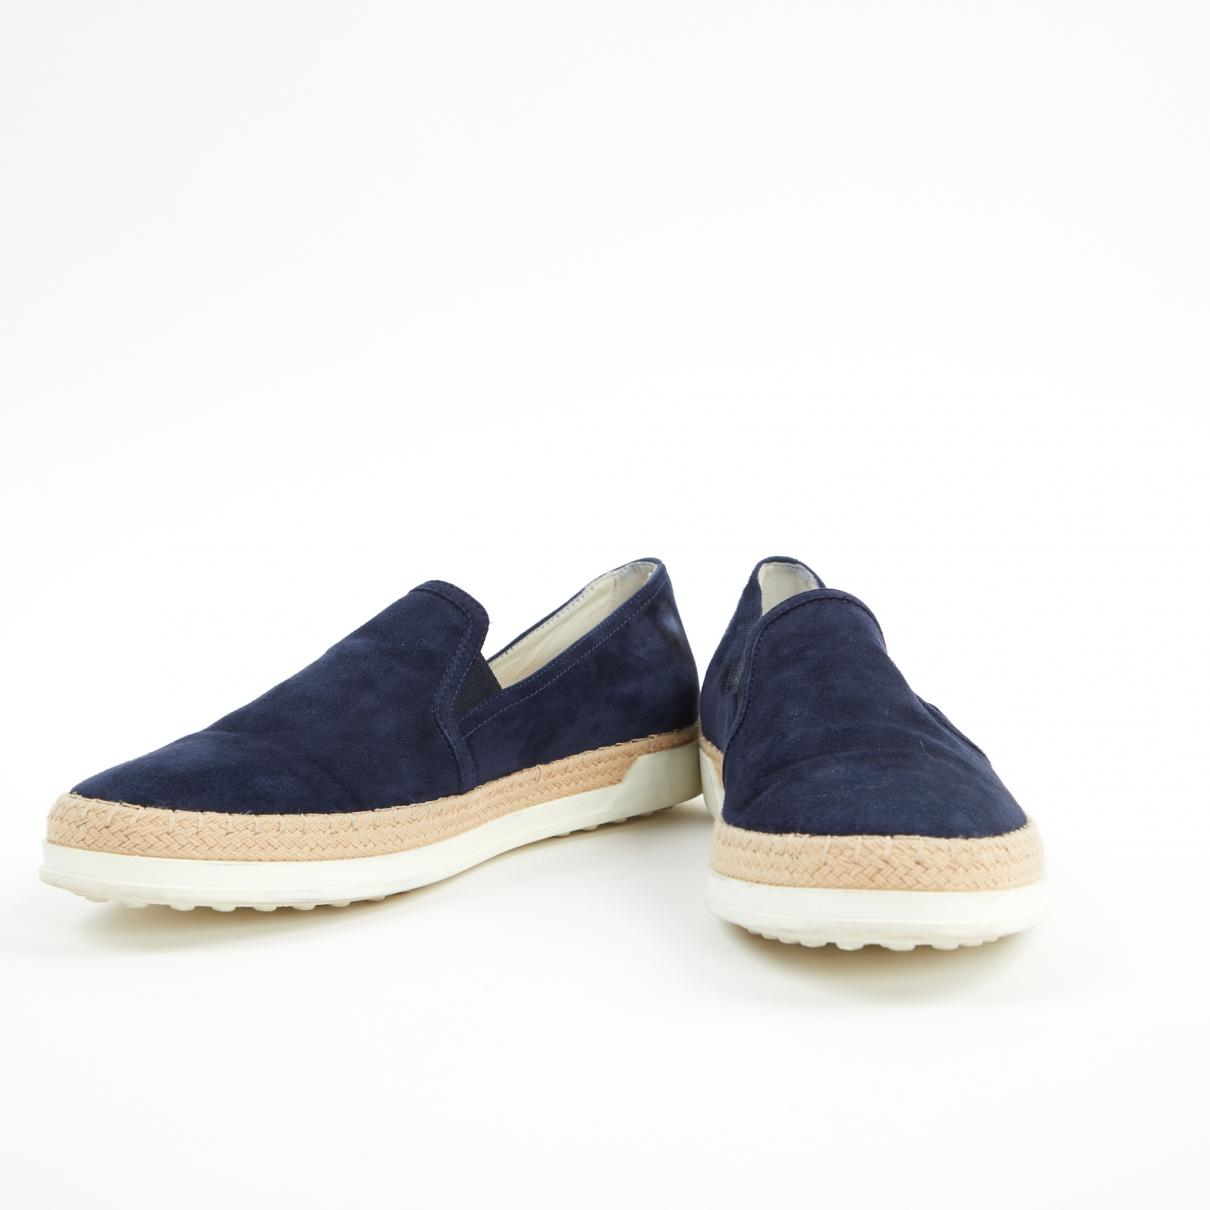 f1652b504 Tod's Blue Suede Flats in Blue - Save 55% - Lyst